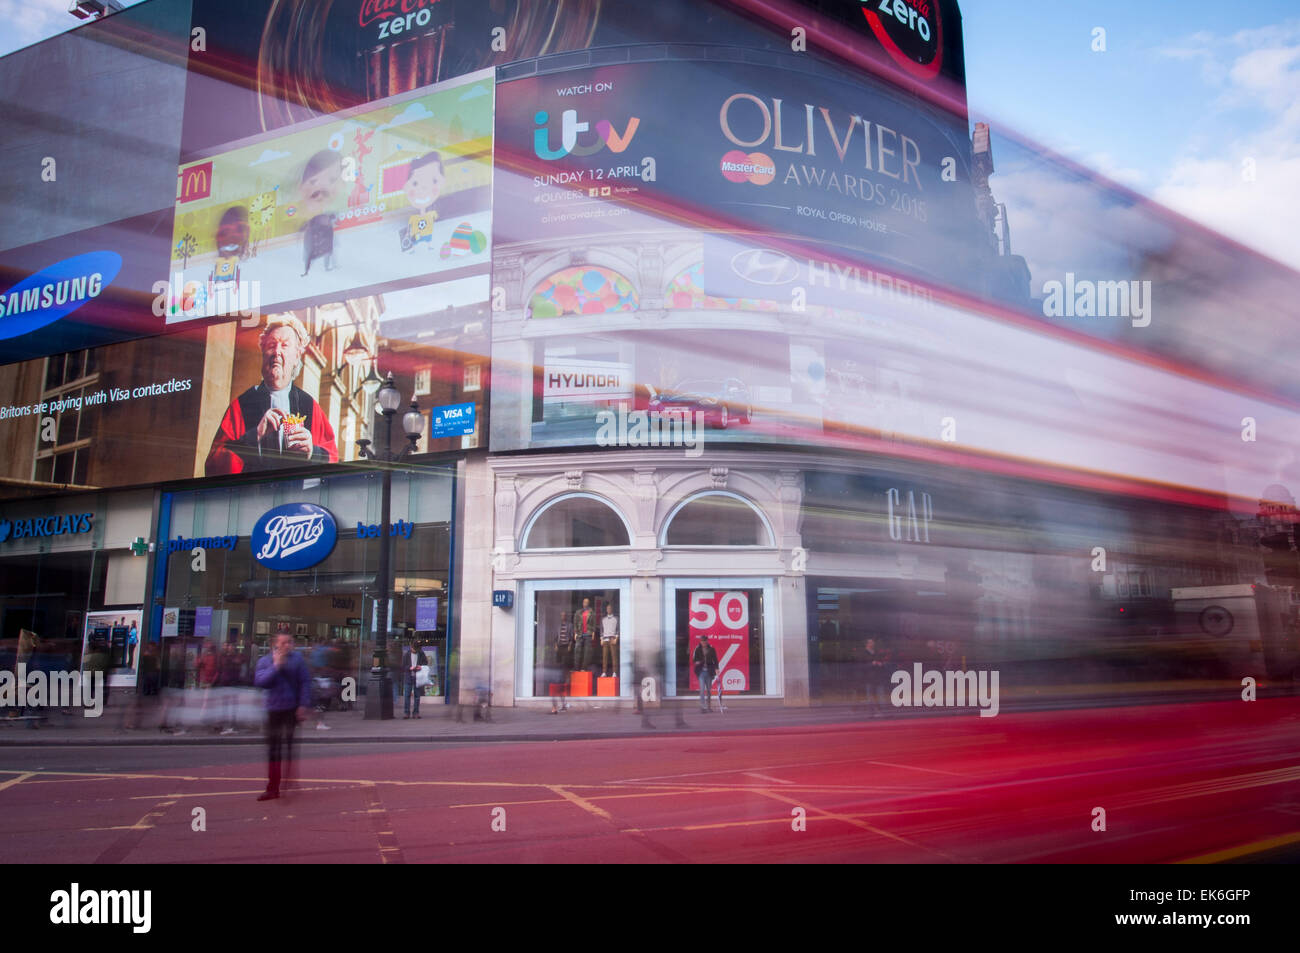 Piccadilly Circus with red London bus. - Stock Image